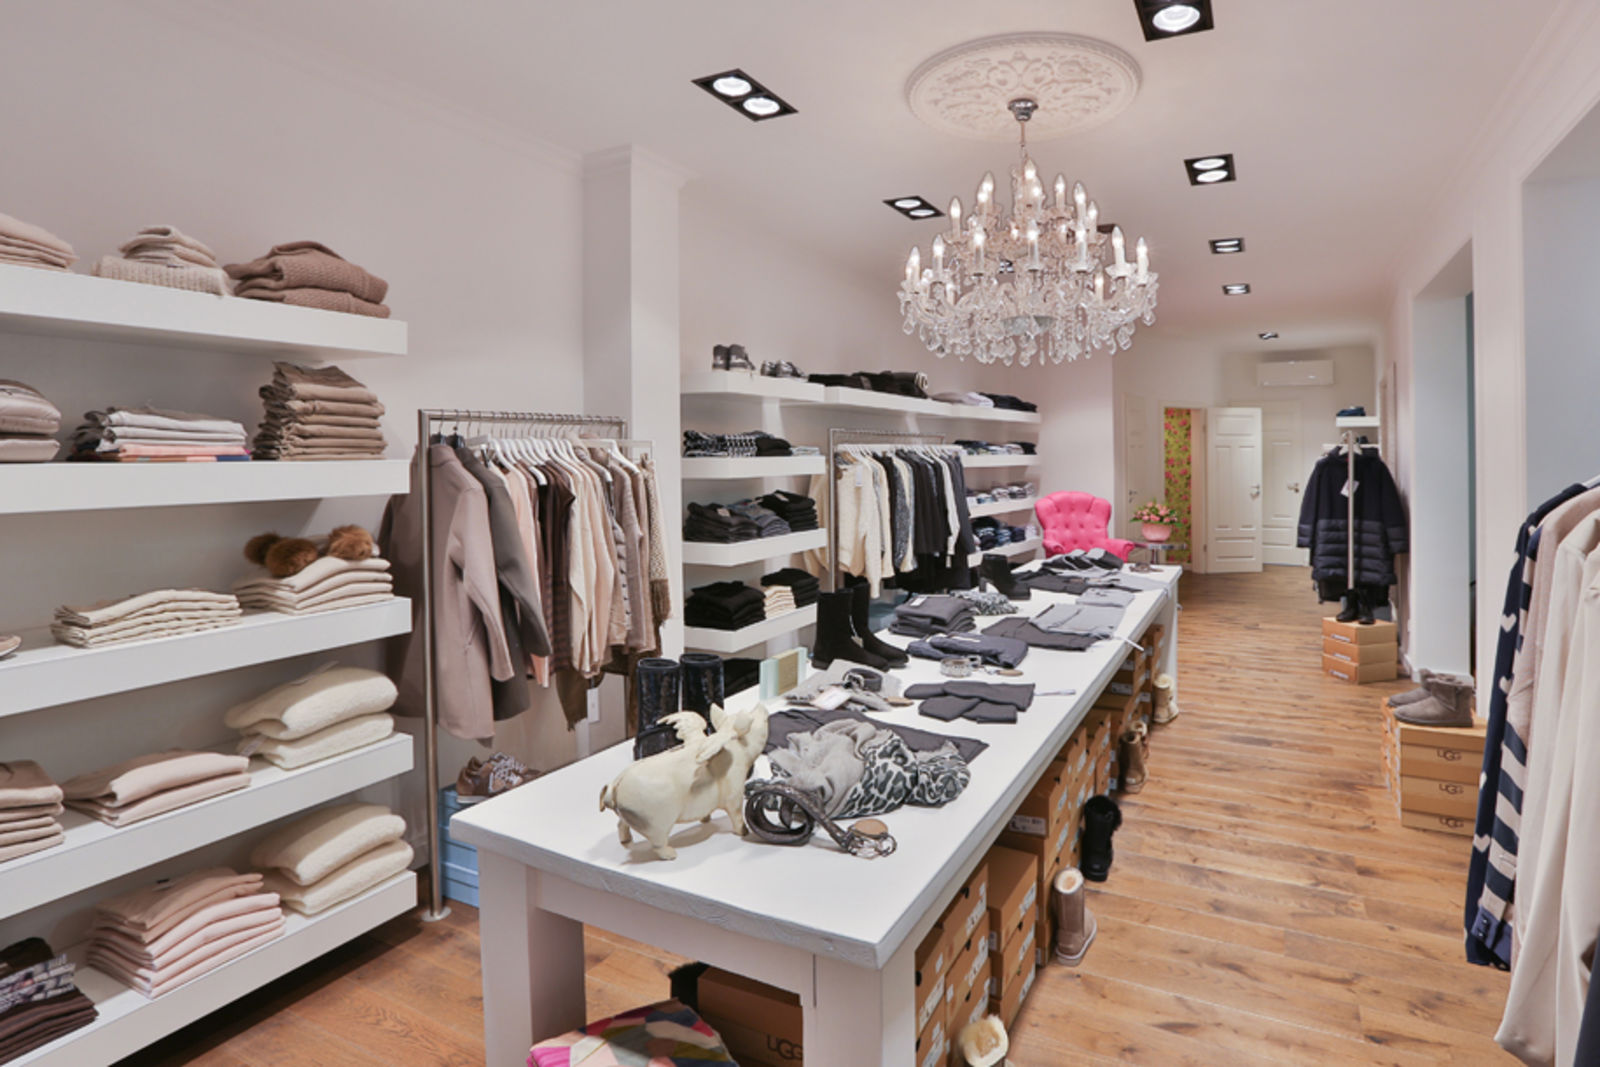 kleiderschrank - women's wear in Kempen (Bild 4)